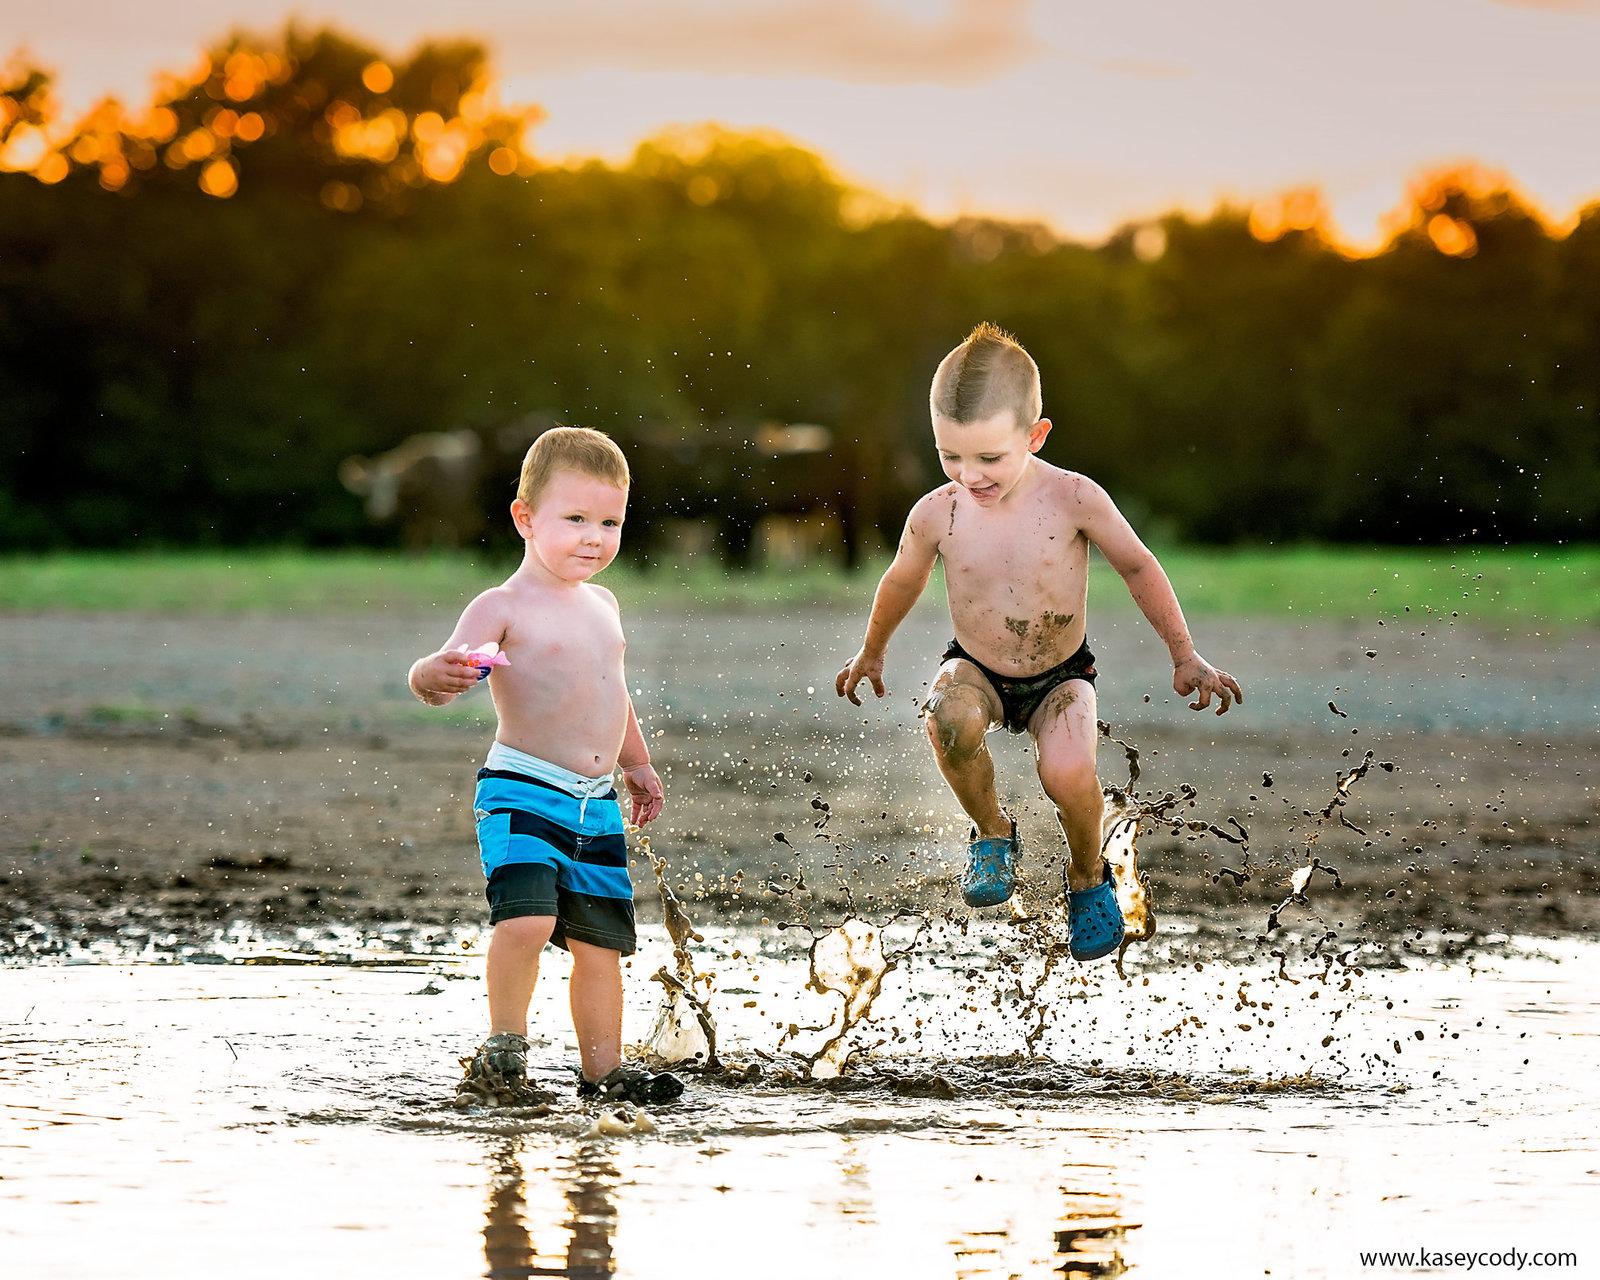 Mud-Minis-Weatherford-TX-Photographer-Outdoor-Sunset-Cows-Toddlers-Boys-Kasey-Cody-KC-Photography-Design